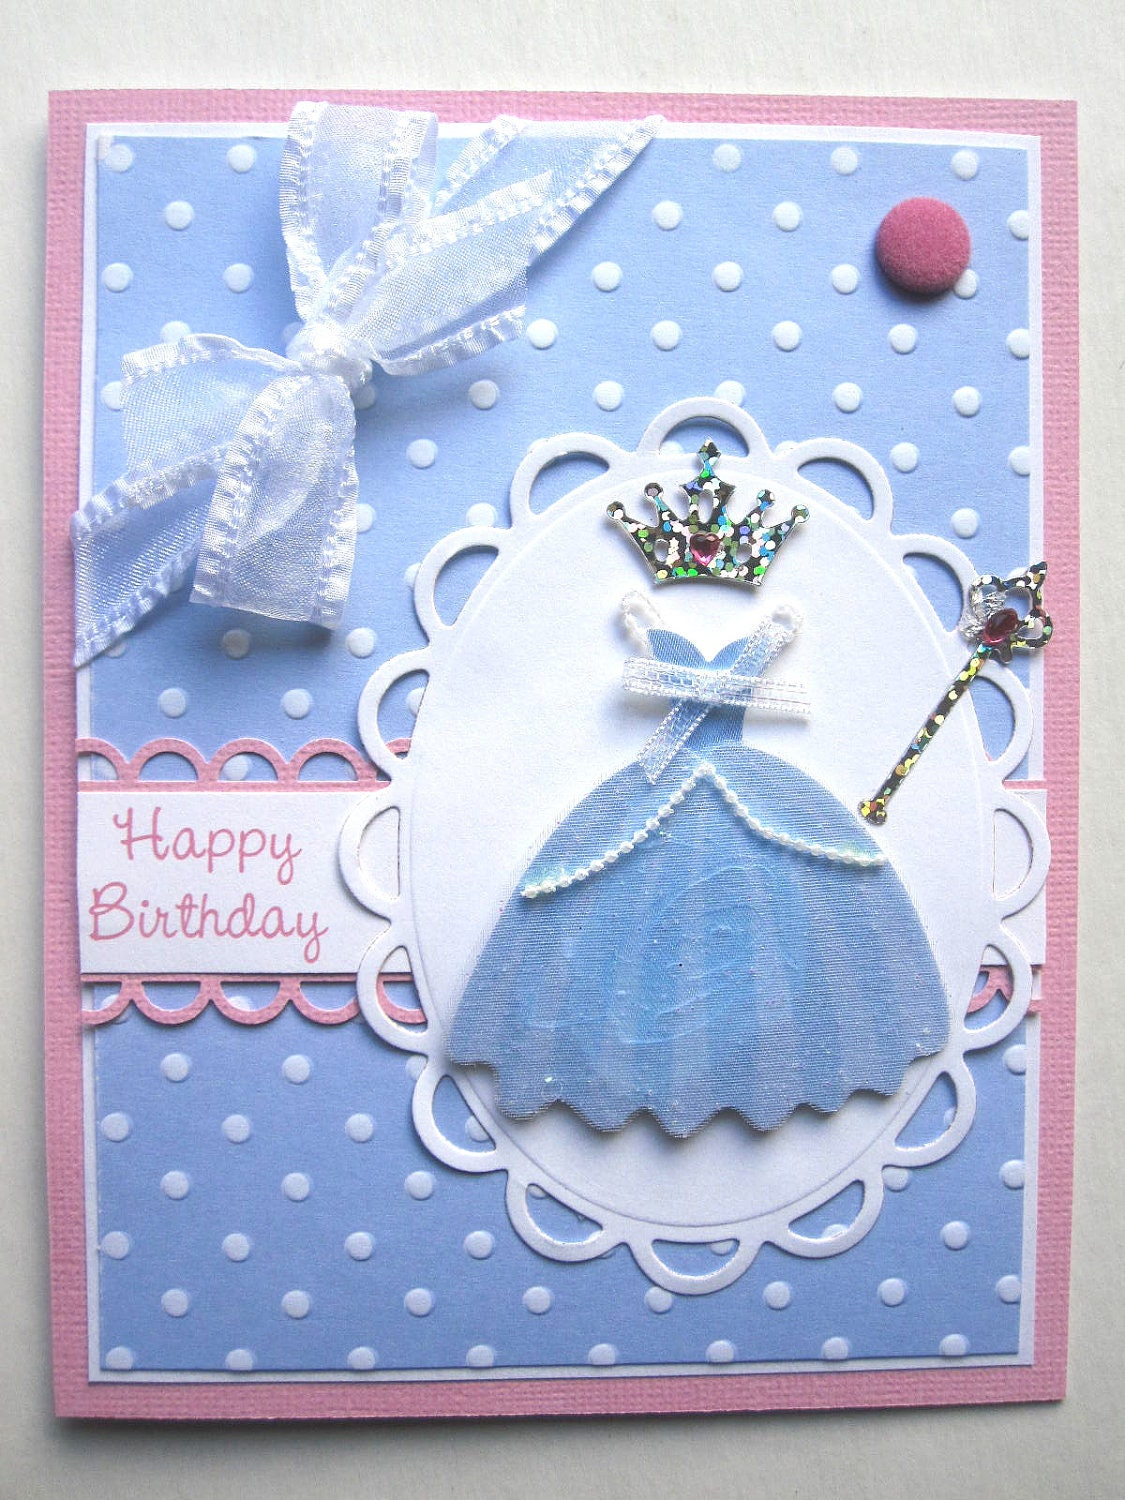 handmade princess birthday card for young girl, Birthday card